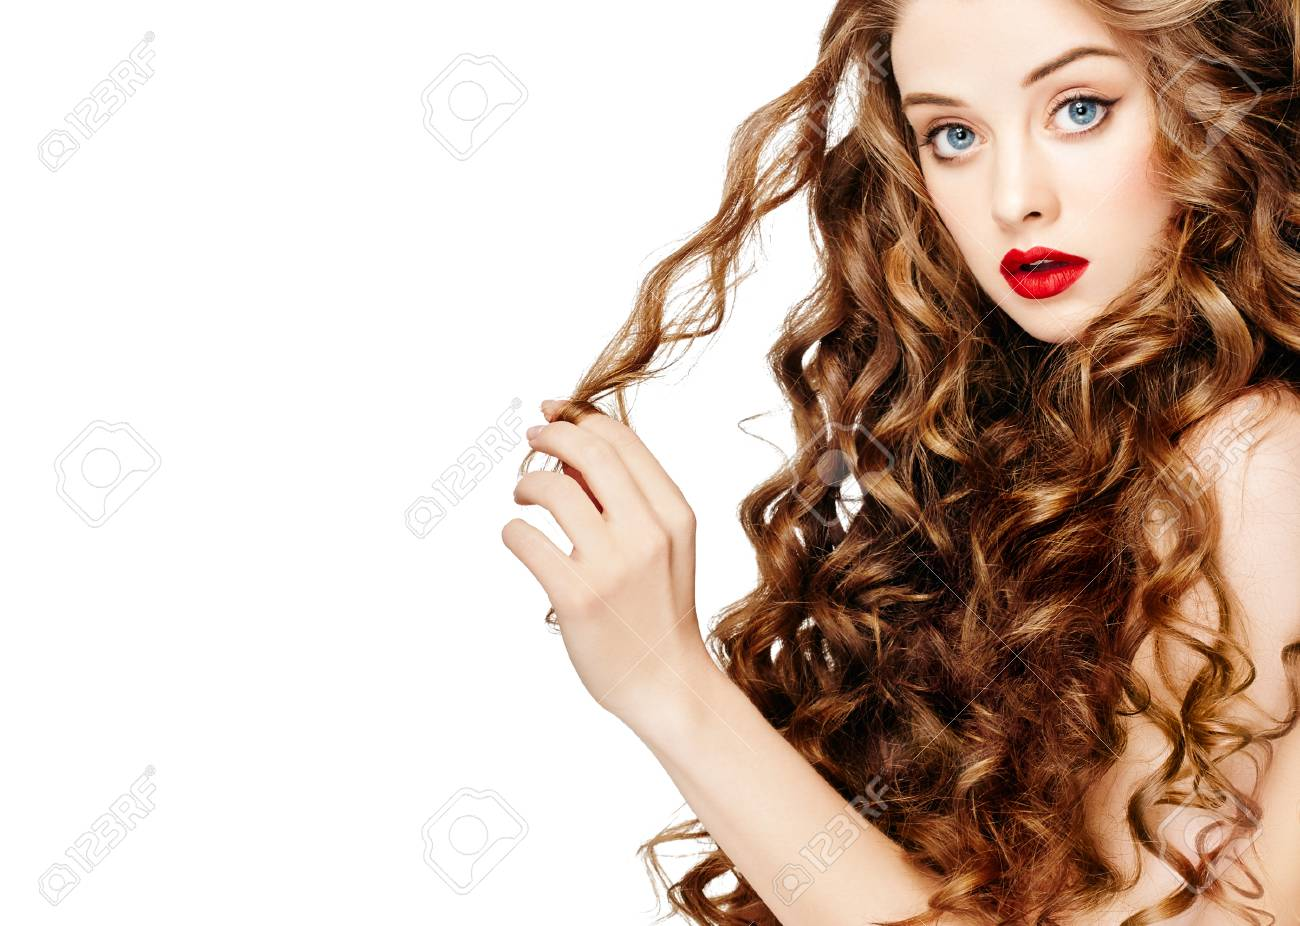 Beautiful People Curly Hair Red Lipsq Fashion Girl With Healthy